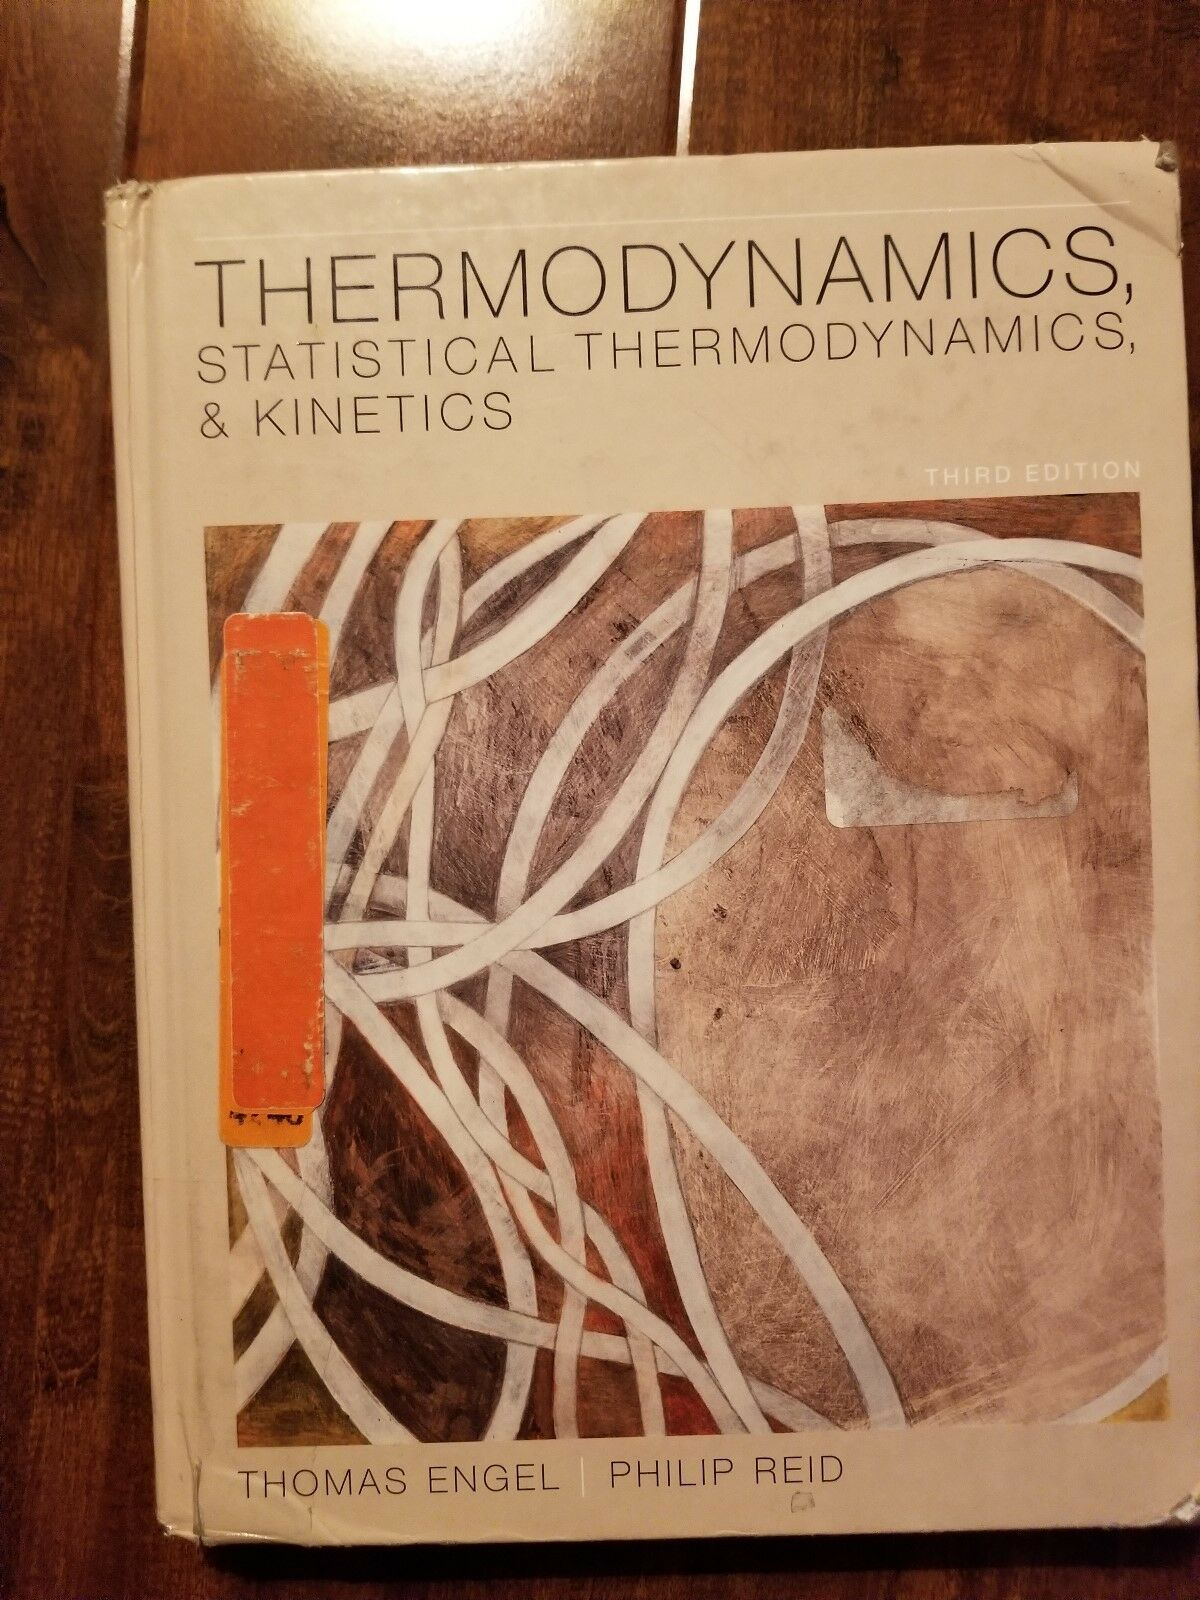 Thermodynamics, Statistical Thermodynamics, and Kinetics by Philip Reid and Thomas  Engel (2012, Hardcover, Revised) | eBay